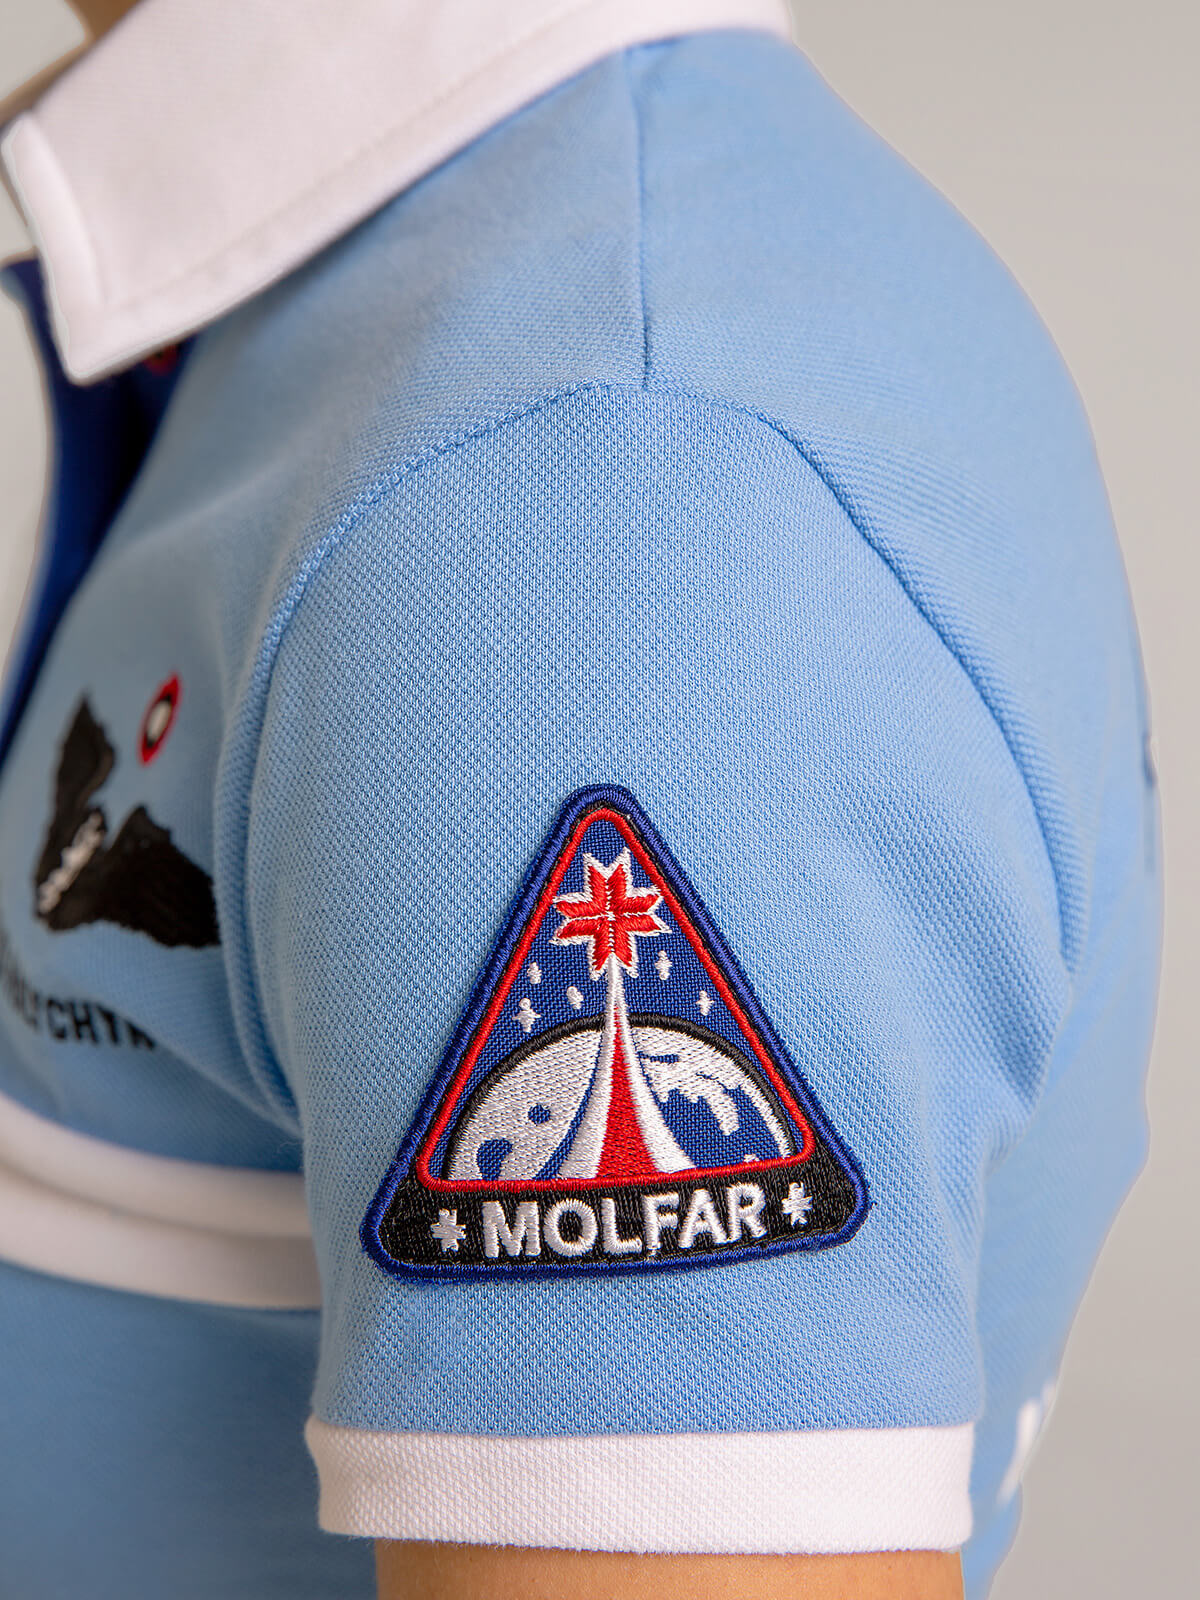 Women's Polo Shirt Molfar. Color sky blue.  Height of the model: 162 cm.